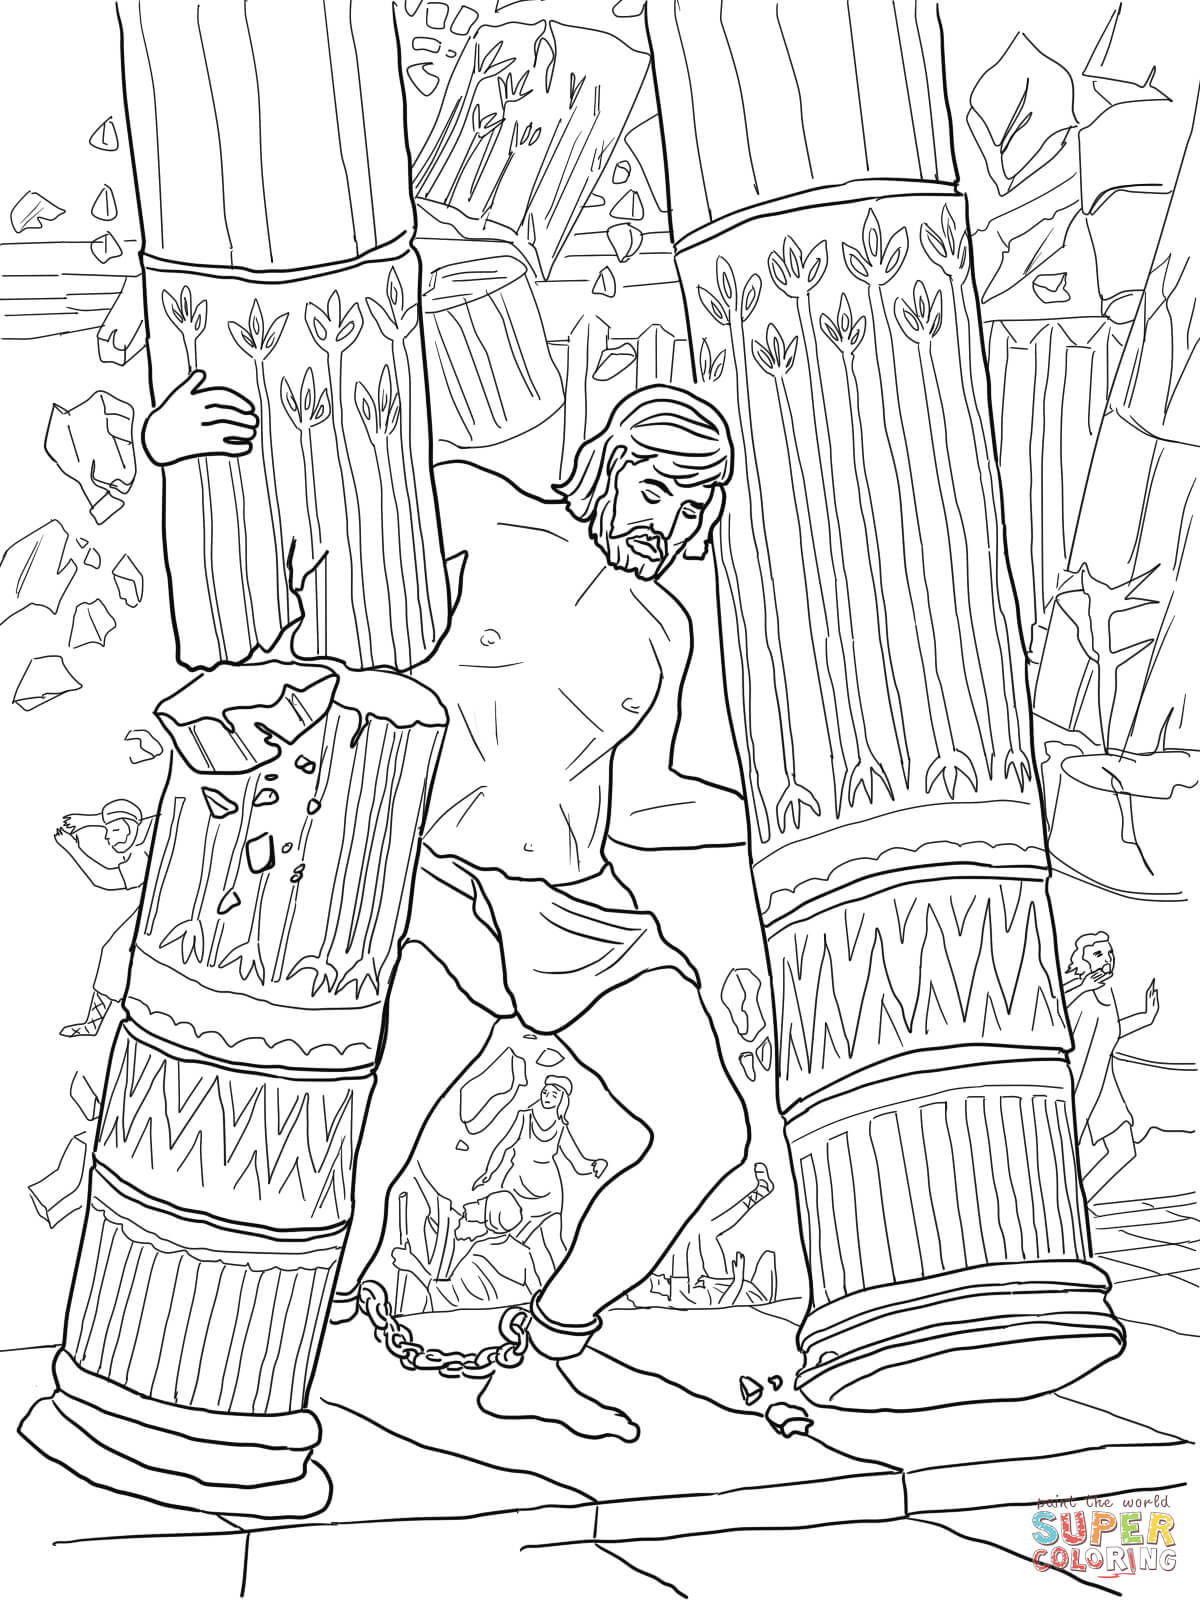 - Samson And Delilah Coloring Pages. Samson Coloring Page Free